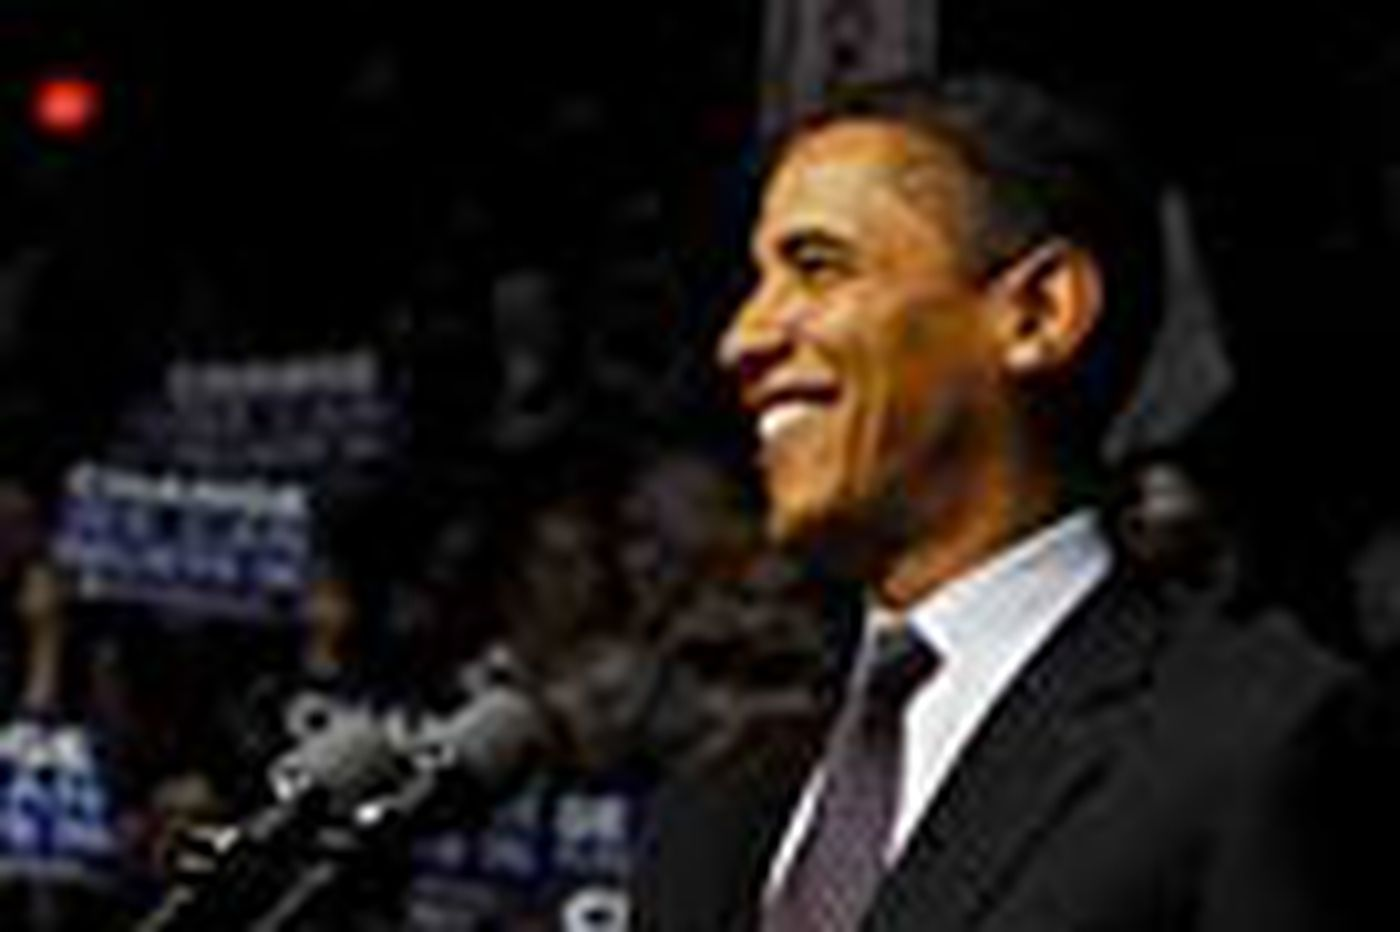 The American Debate: Broken promise will probably benefit Obama